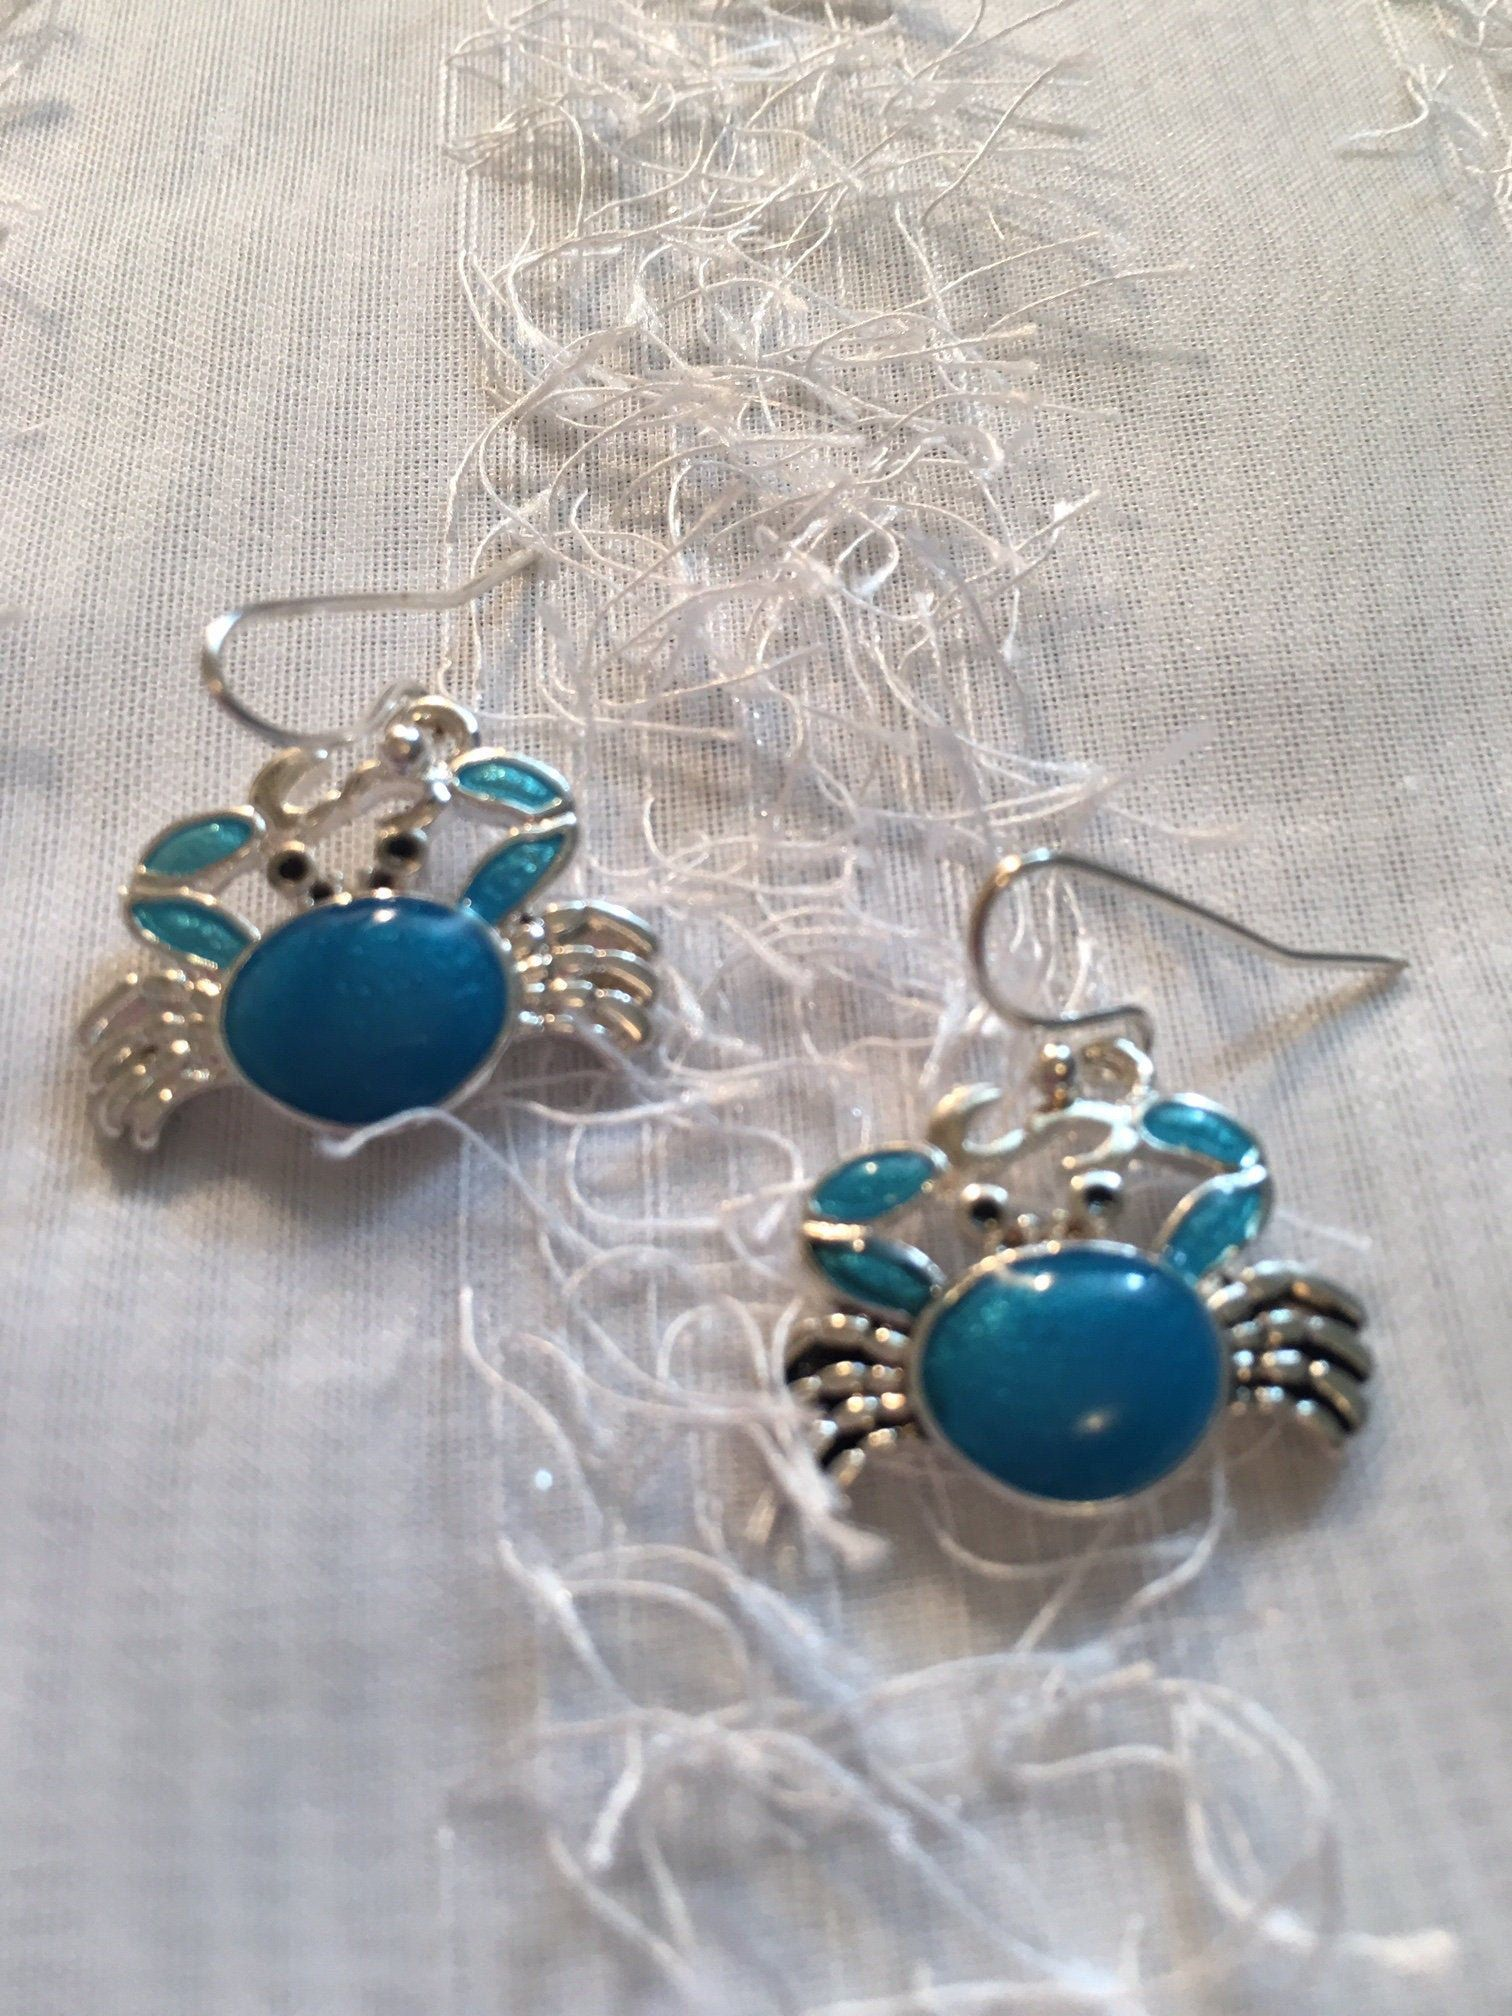 Crab Necklace And Earring Set Blue Made Of Sterling Silver Bracelet